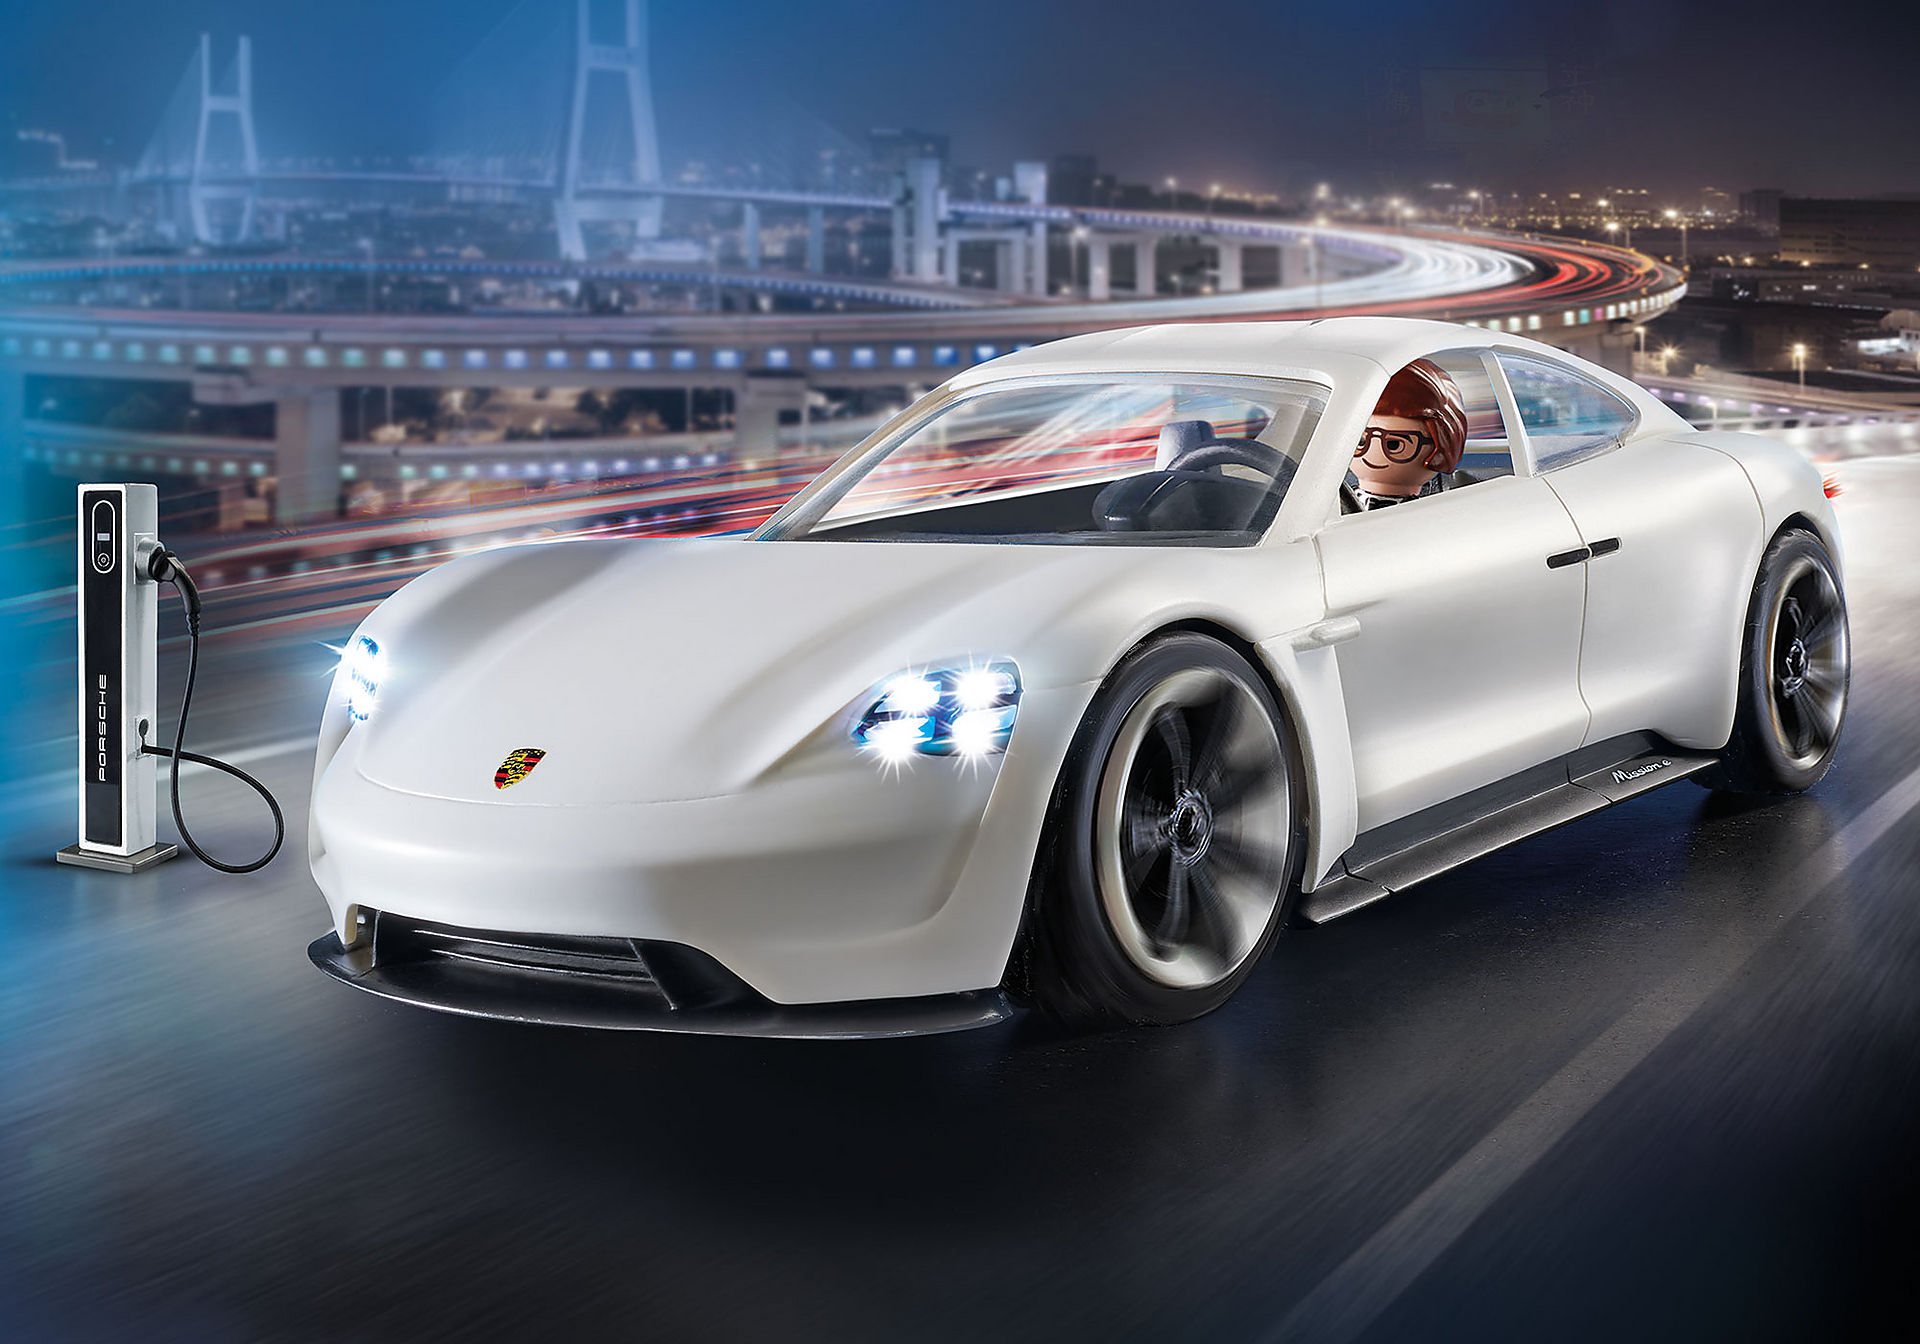 70078 PLAYMOBIL: THE MOVIE Rex Dasher et  Porsche Mission E zoom image1